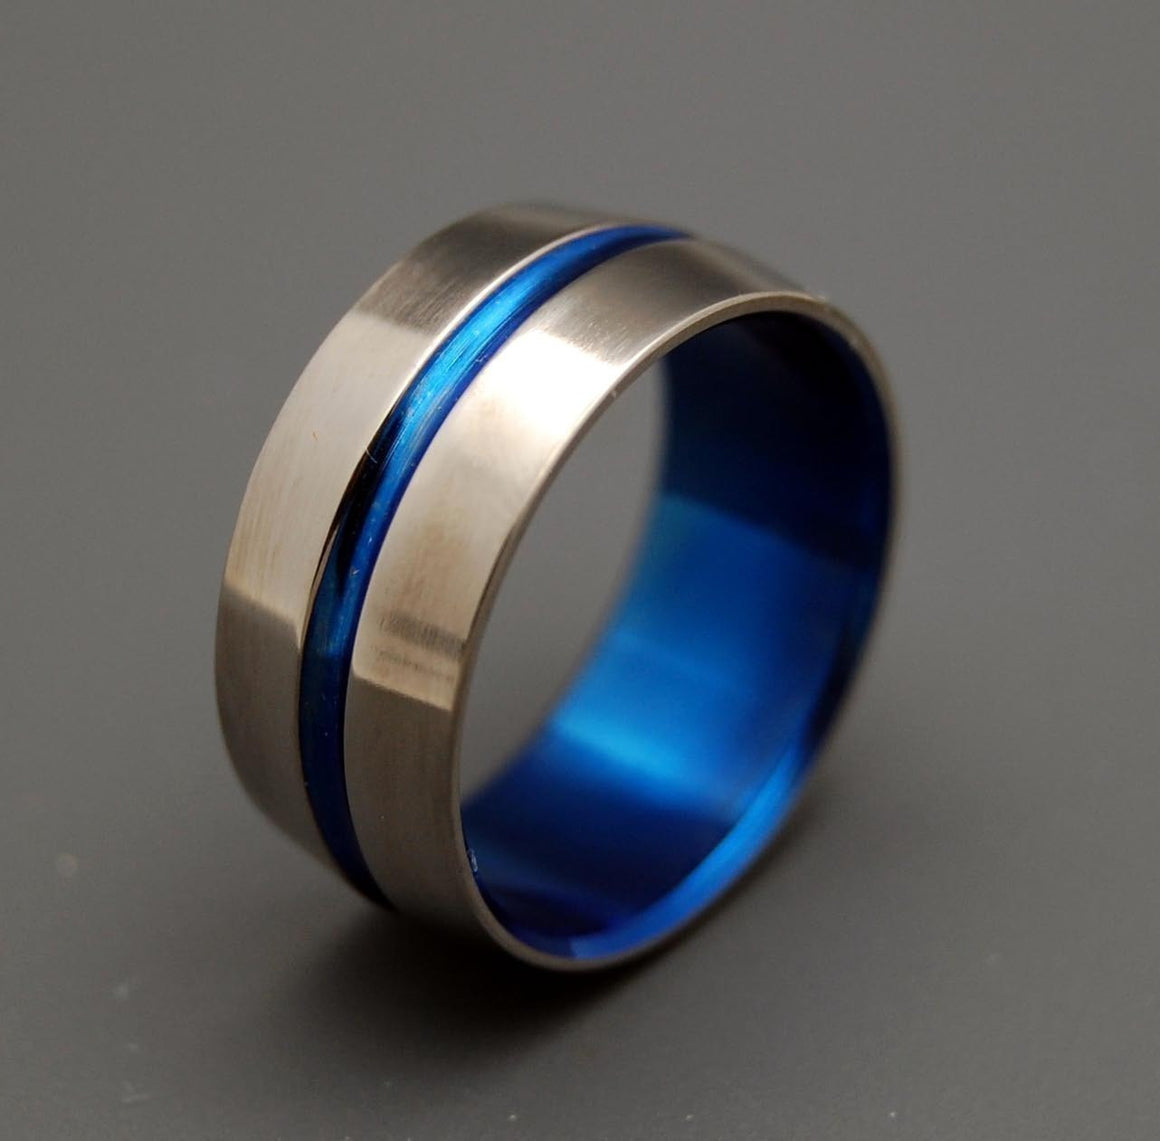 BLUE SIGNATURE RING | Blue Anodized Titanium Wedding Rings, Men's Rings - Minter and Richter Designs